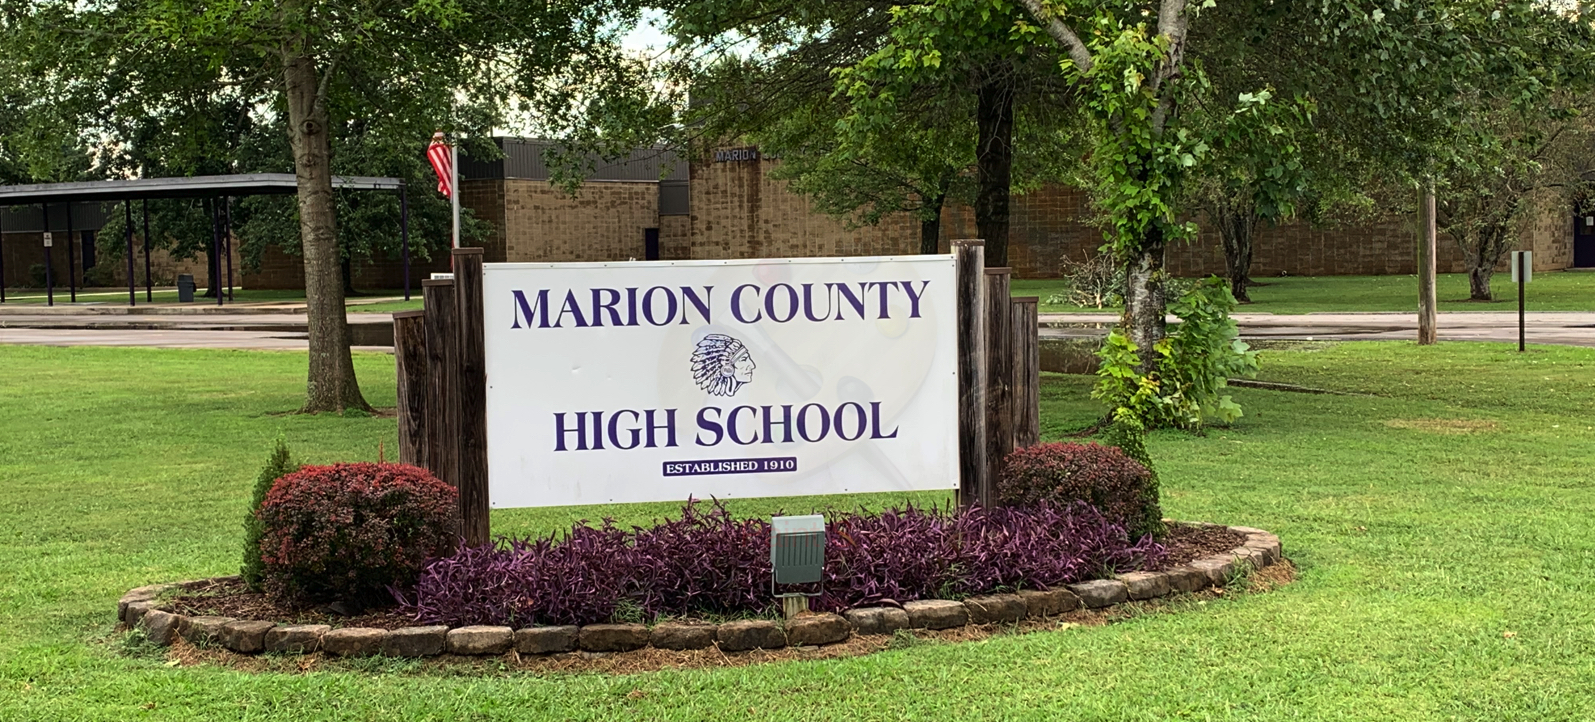 Marion County High School